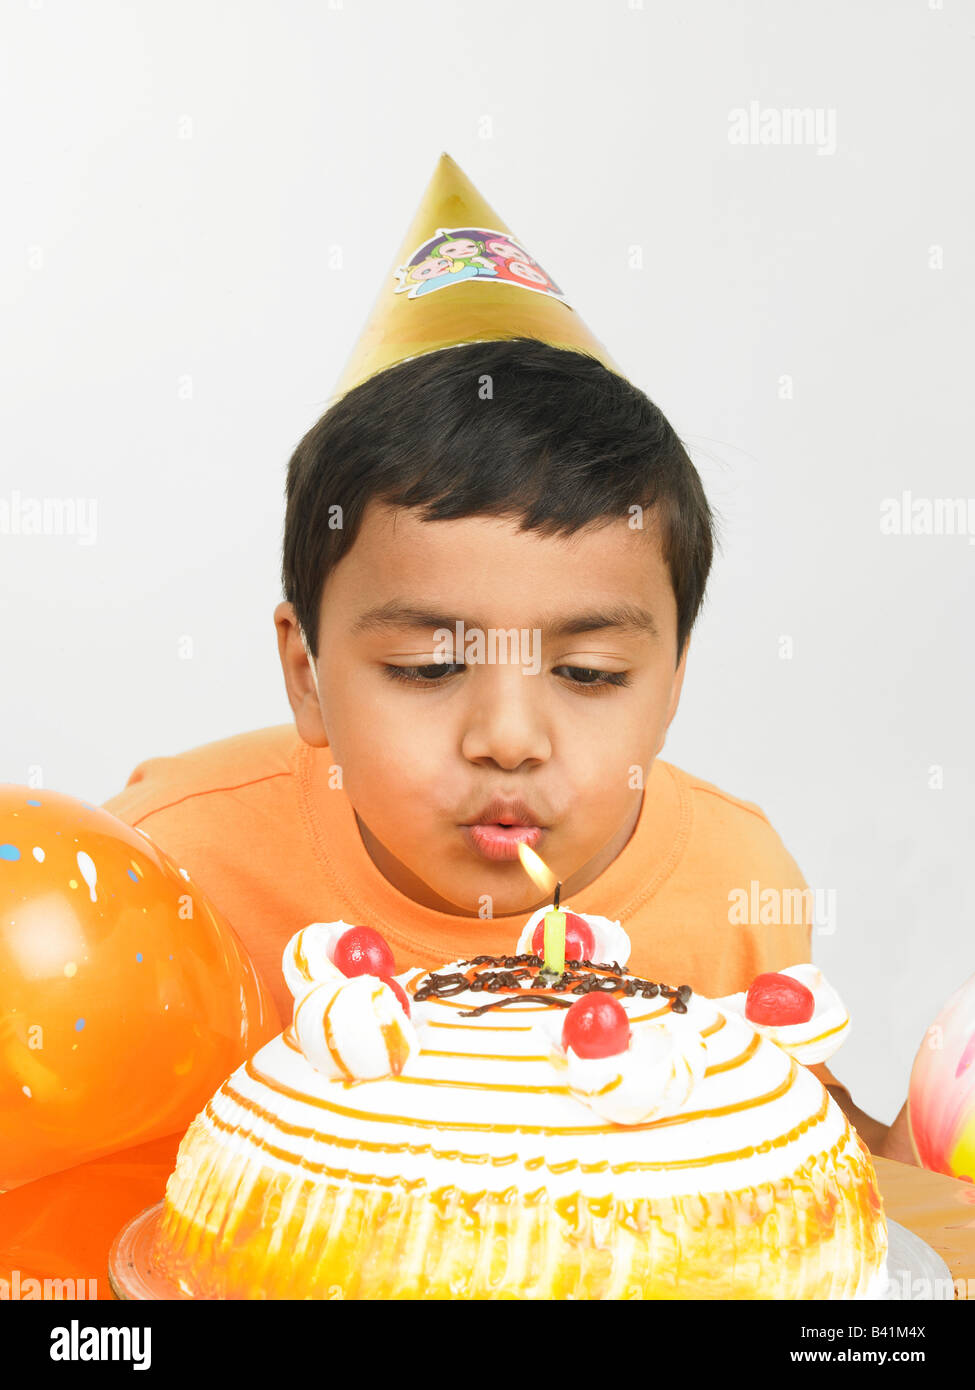 asian kid of indian origin blowing the candle of his birthday cake - Stock Image